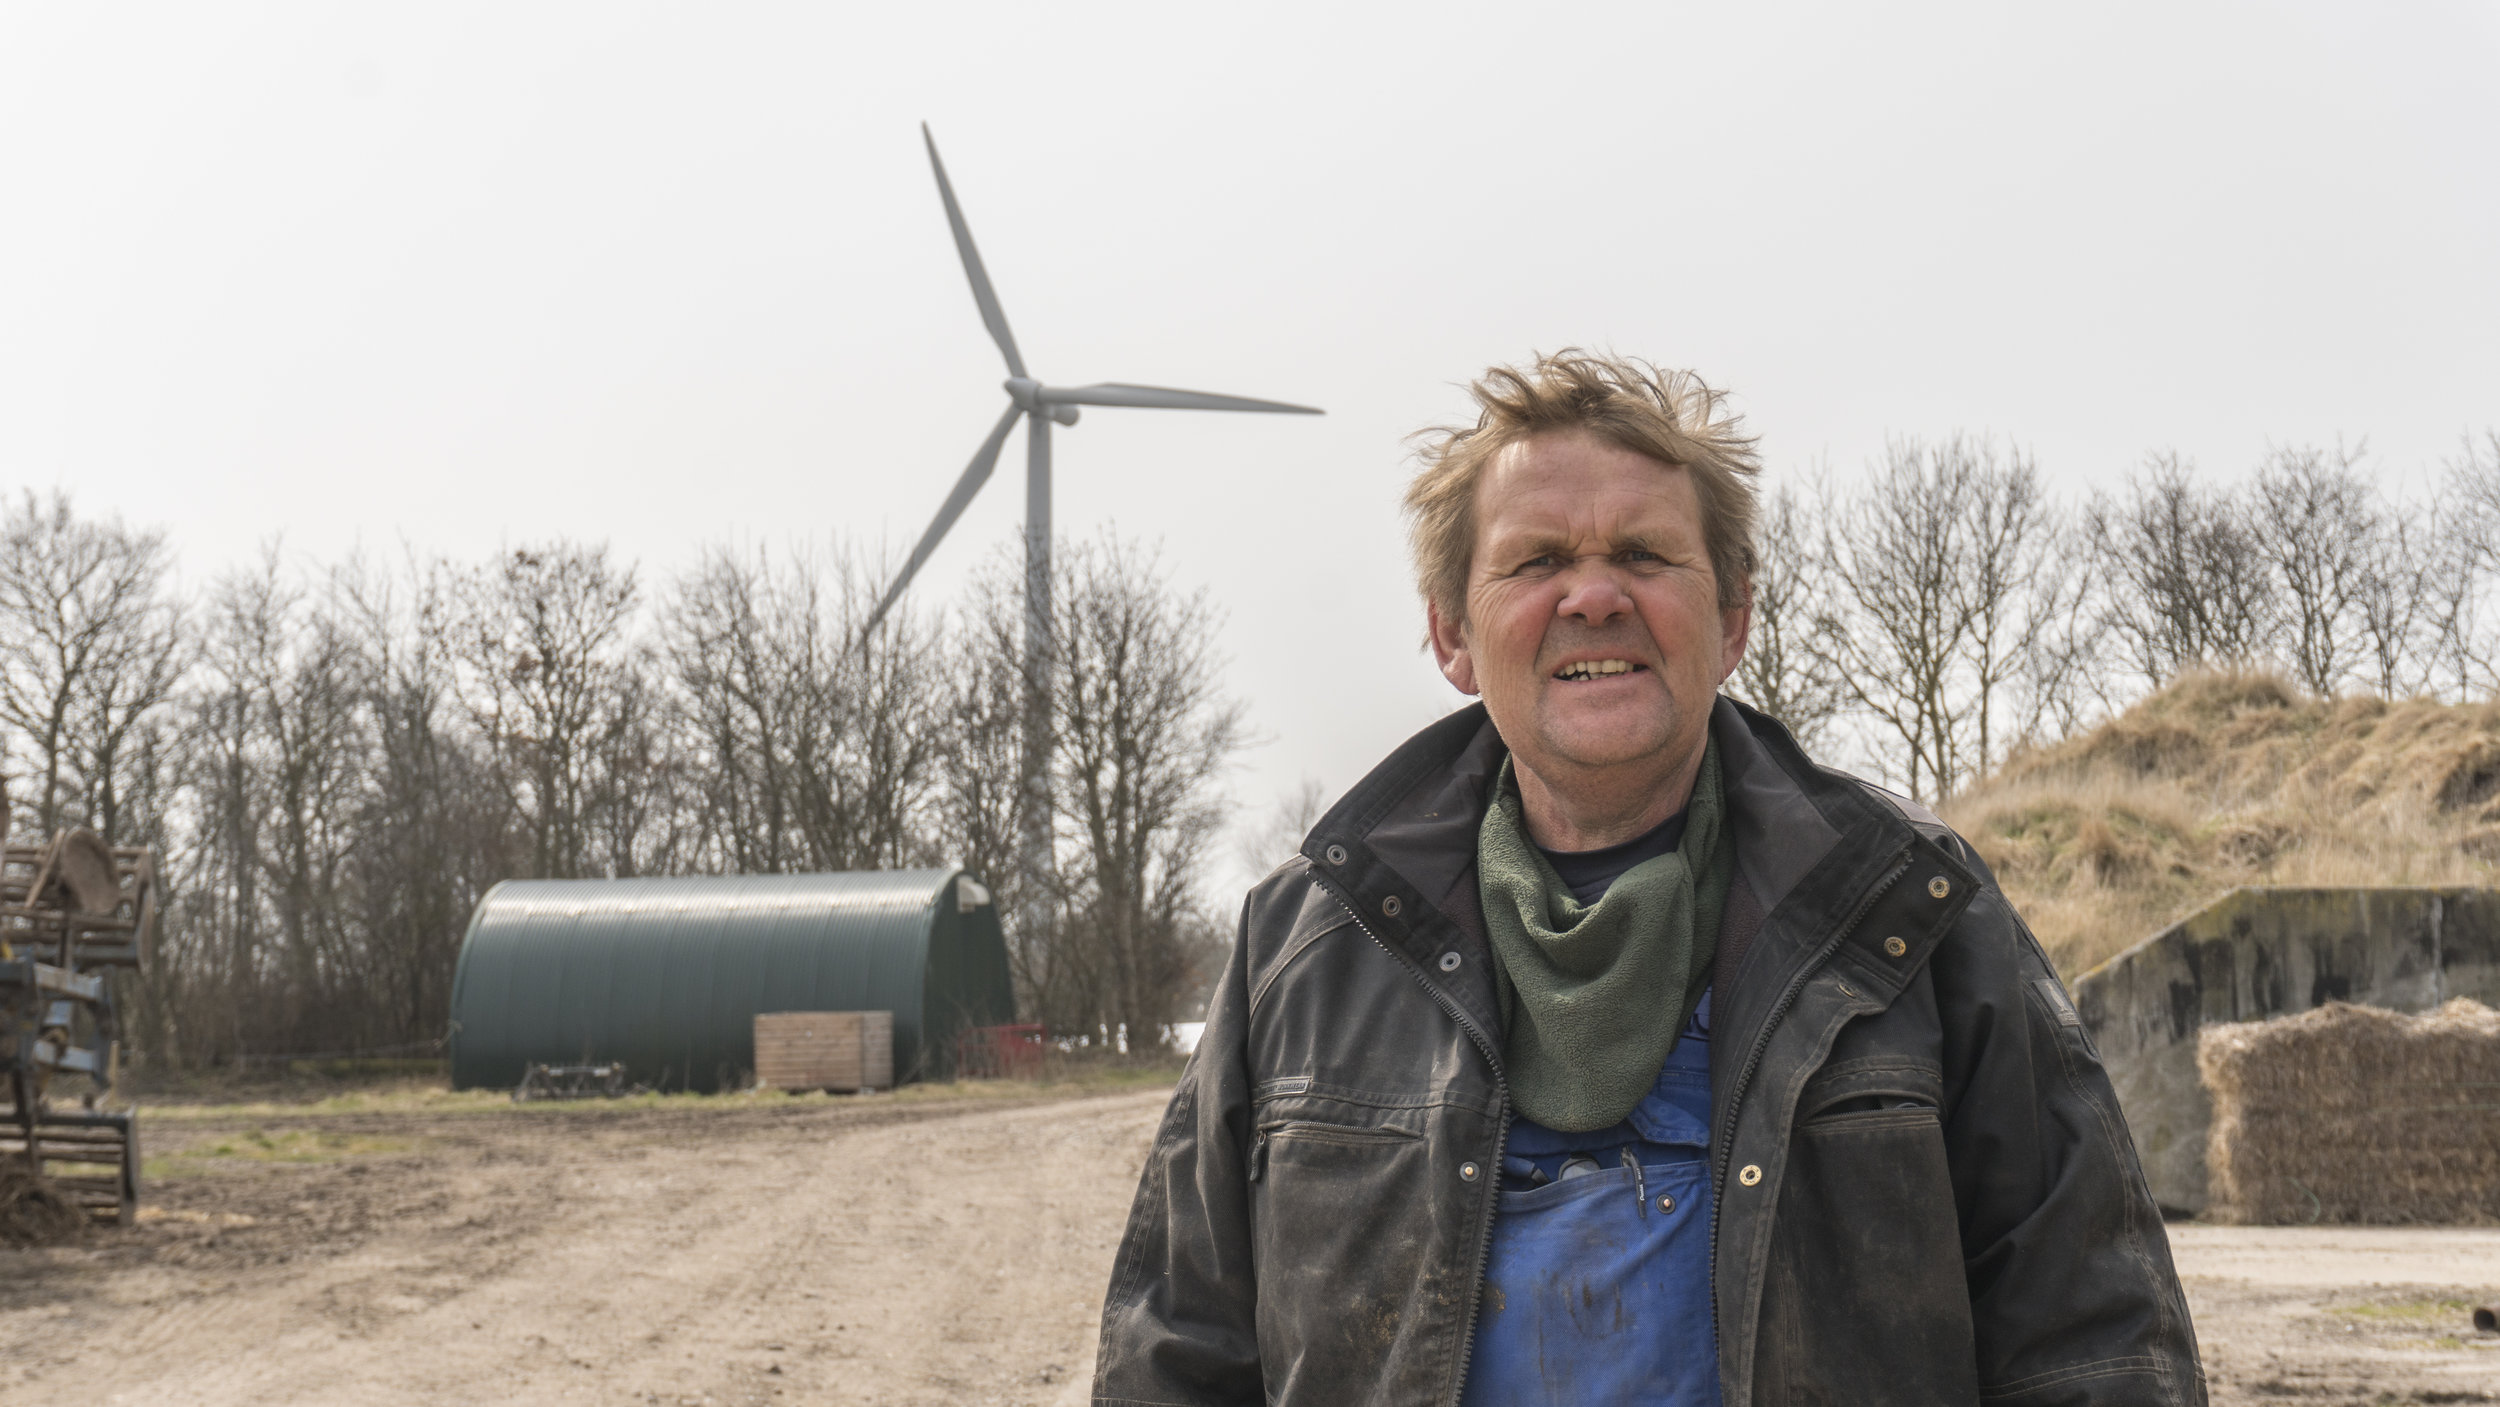 Jørgen Tranberg in front of his windmill. Picture by Amélie Drouet